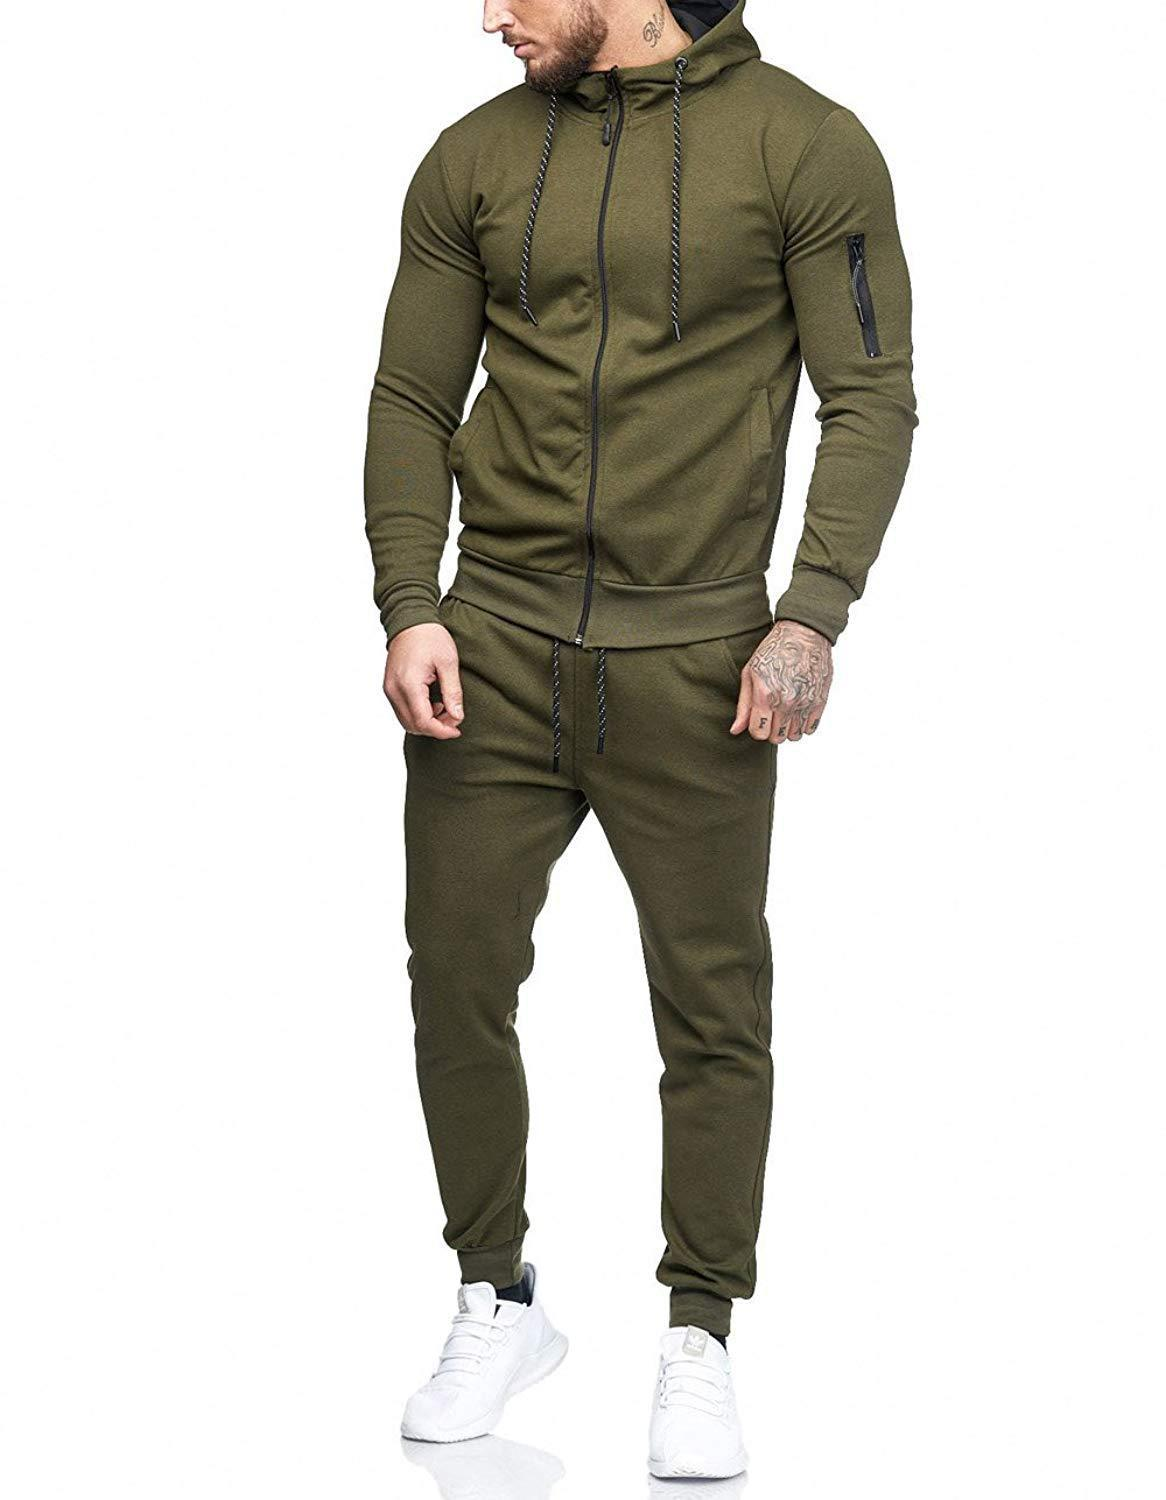 ZOGAA Zipper Tracksuit Men Set Sporting Two Pieces Sweatsuit Mens Clothes Printed Hooded Hoodies Jacket + Pants Track Suit Male